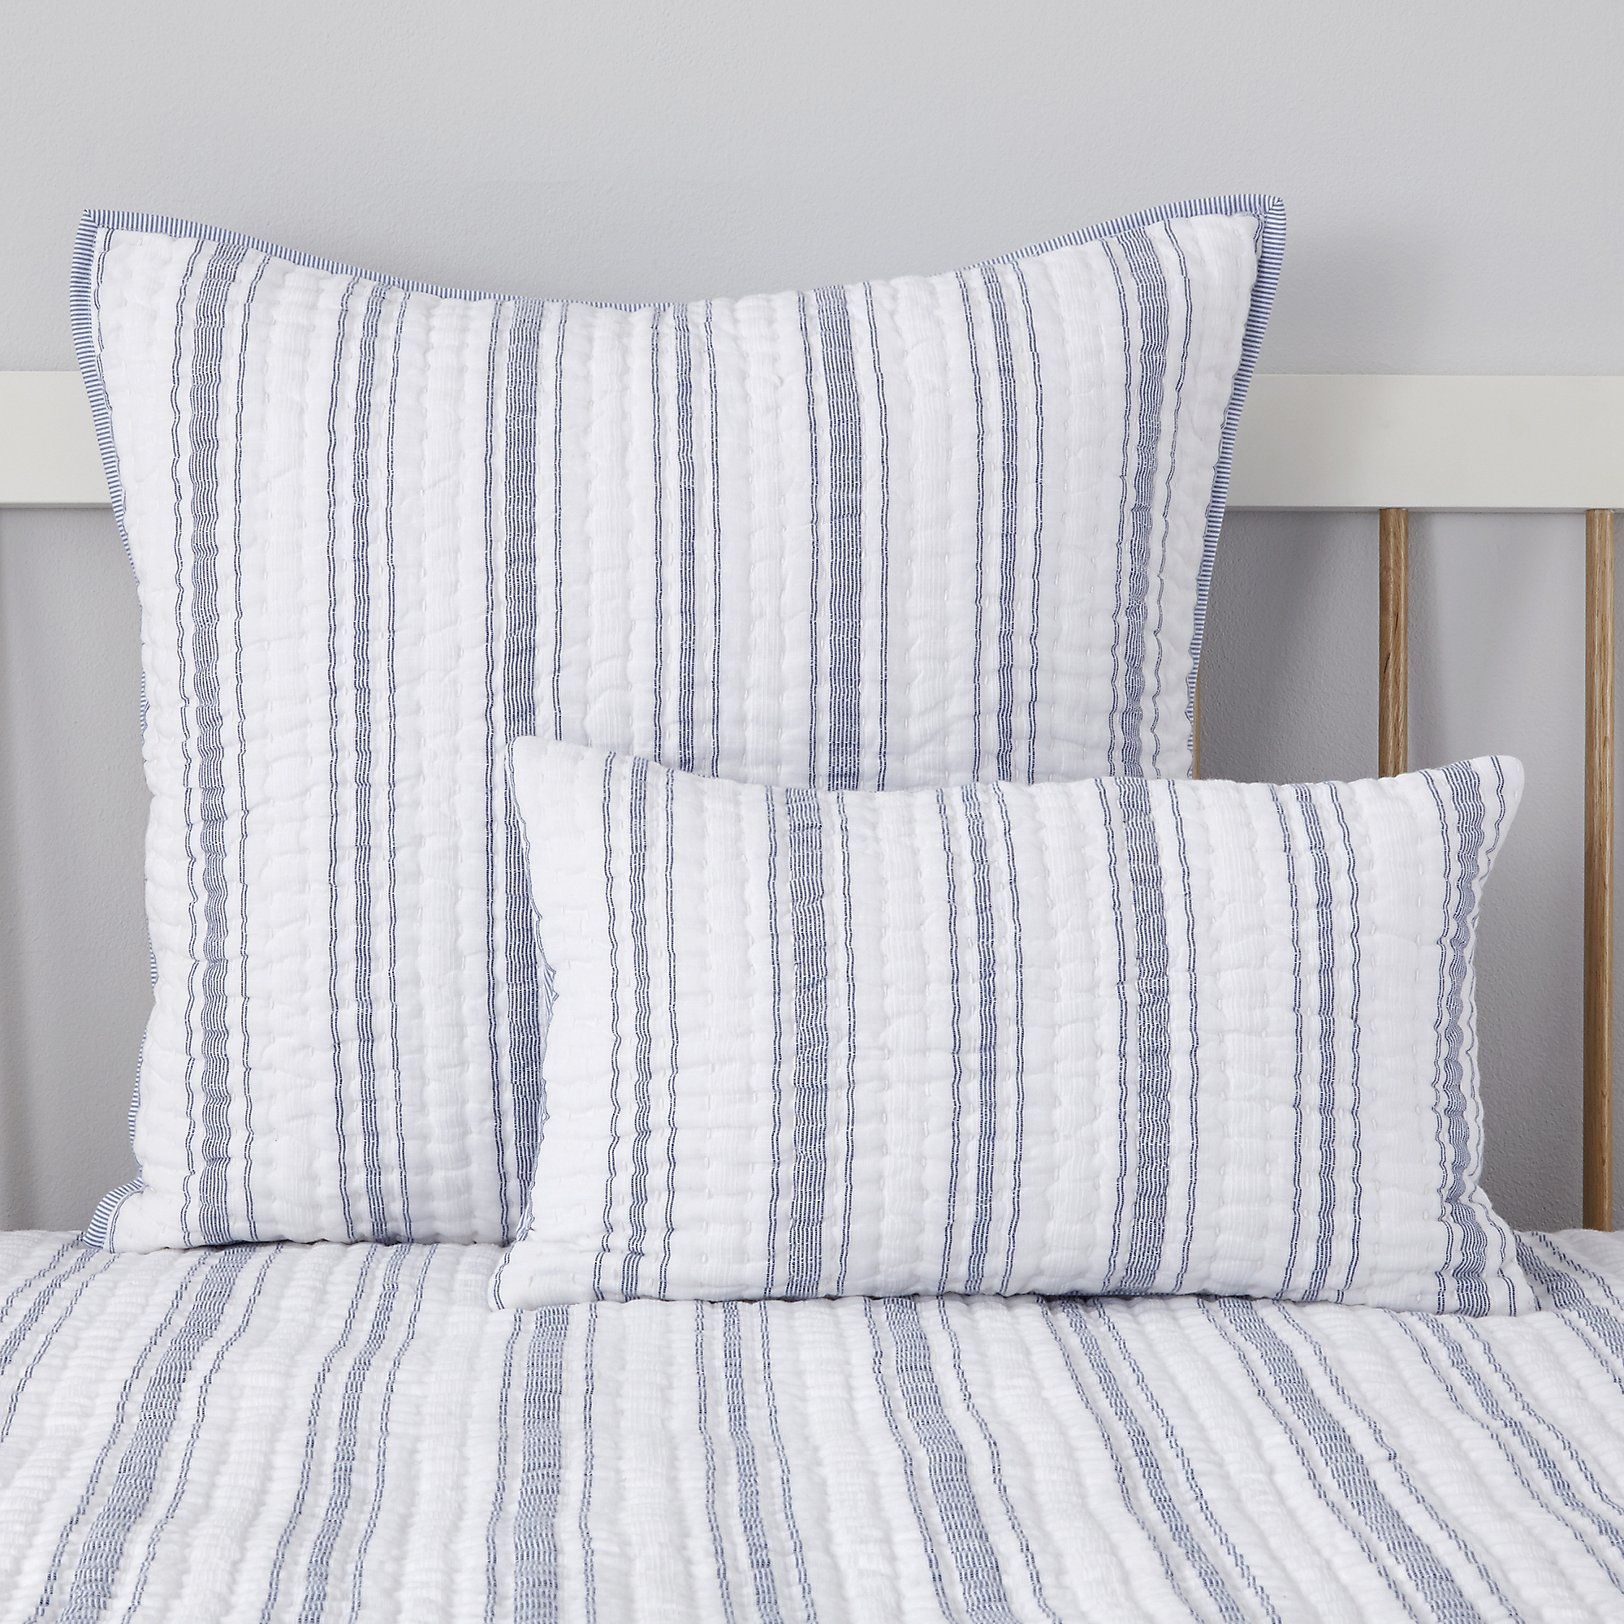 Portreath Collection Cushions Bedspreads Throws Bedroom The White Company Uk